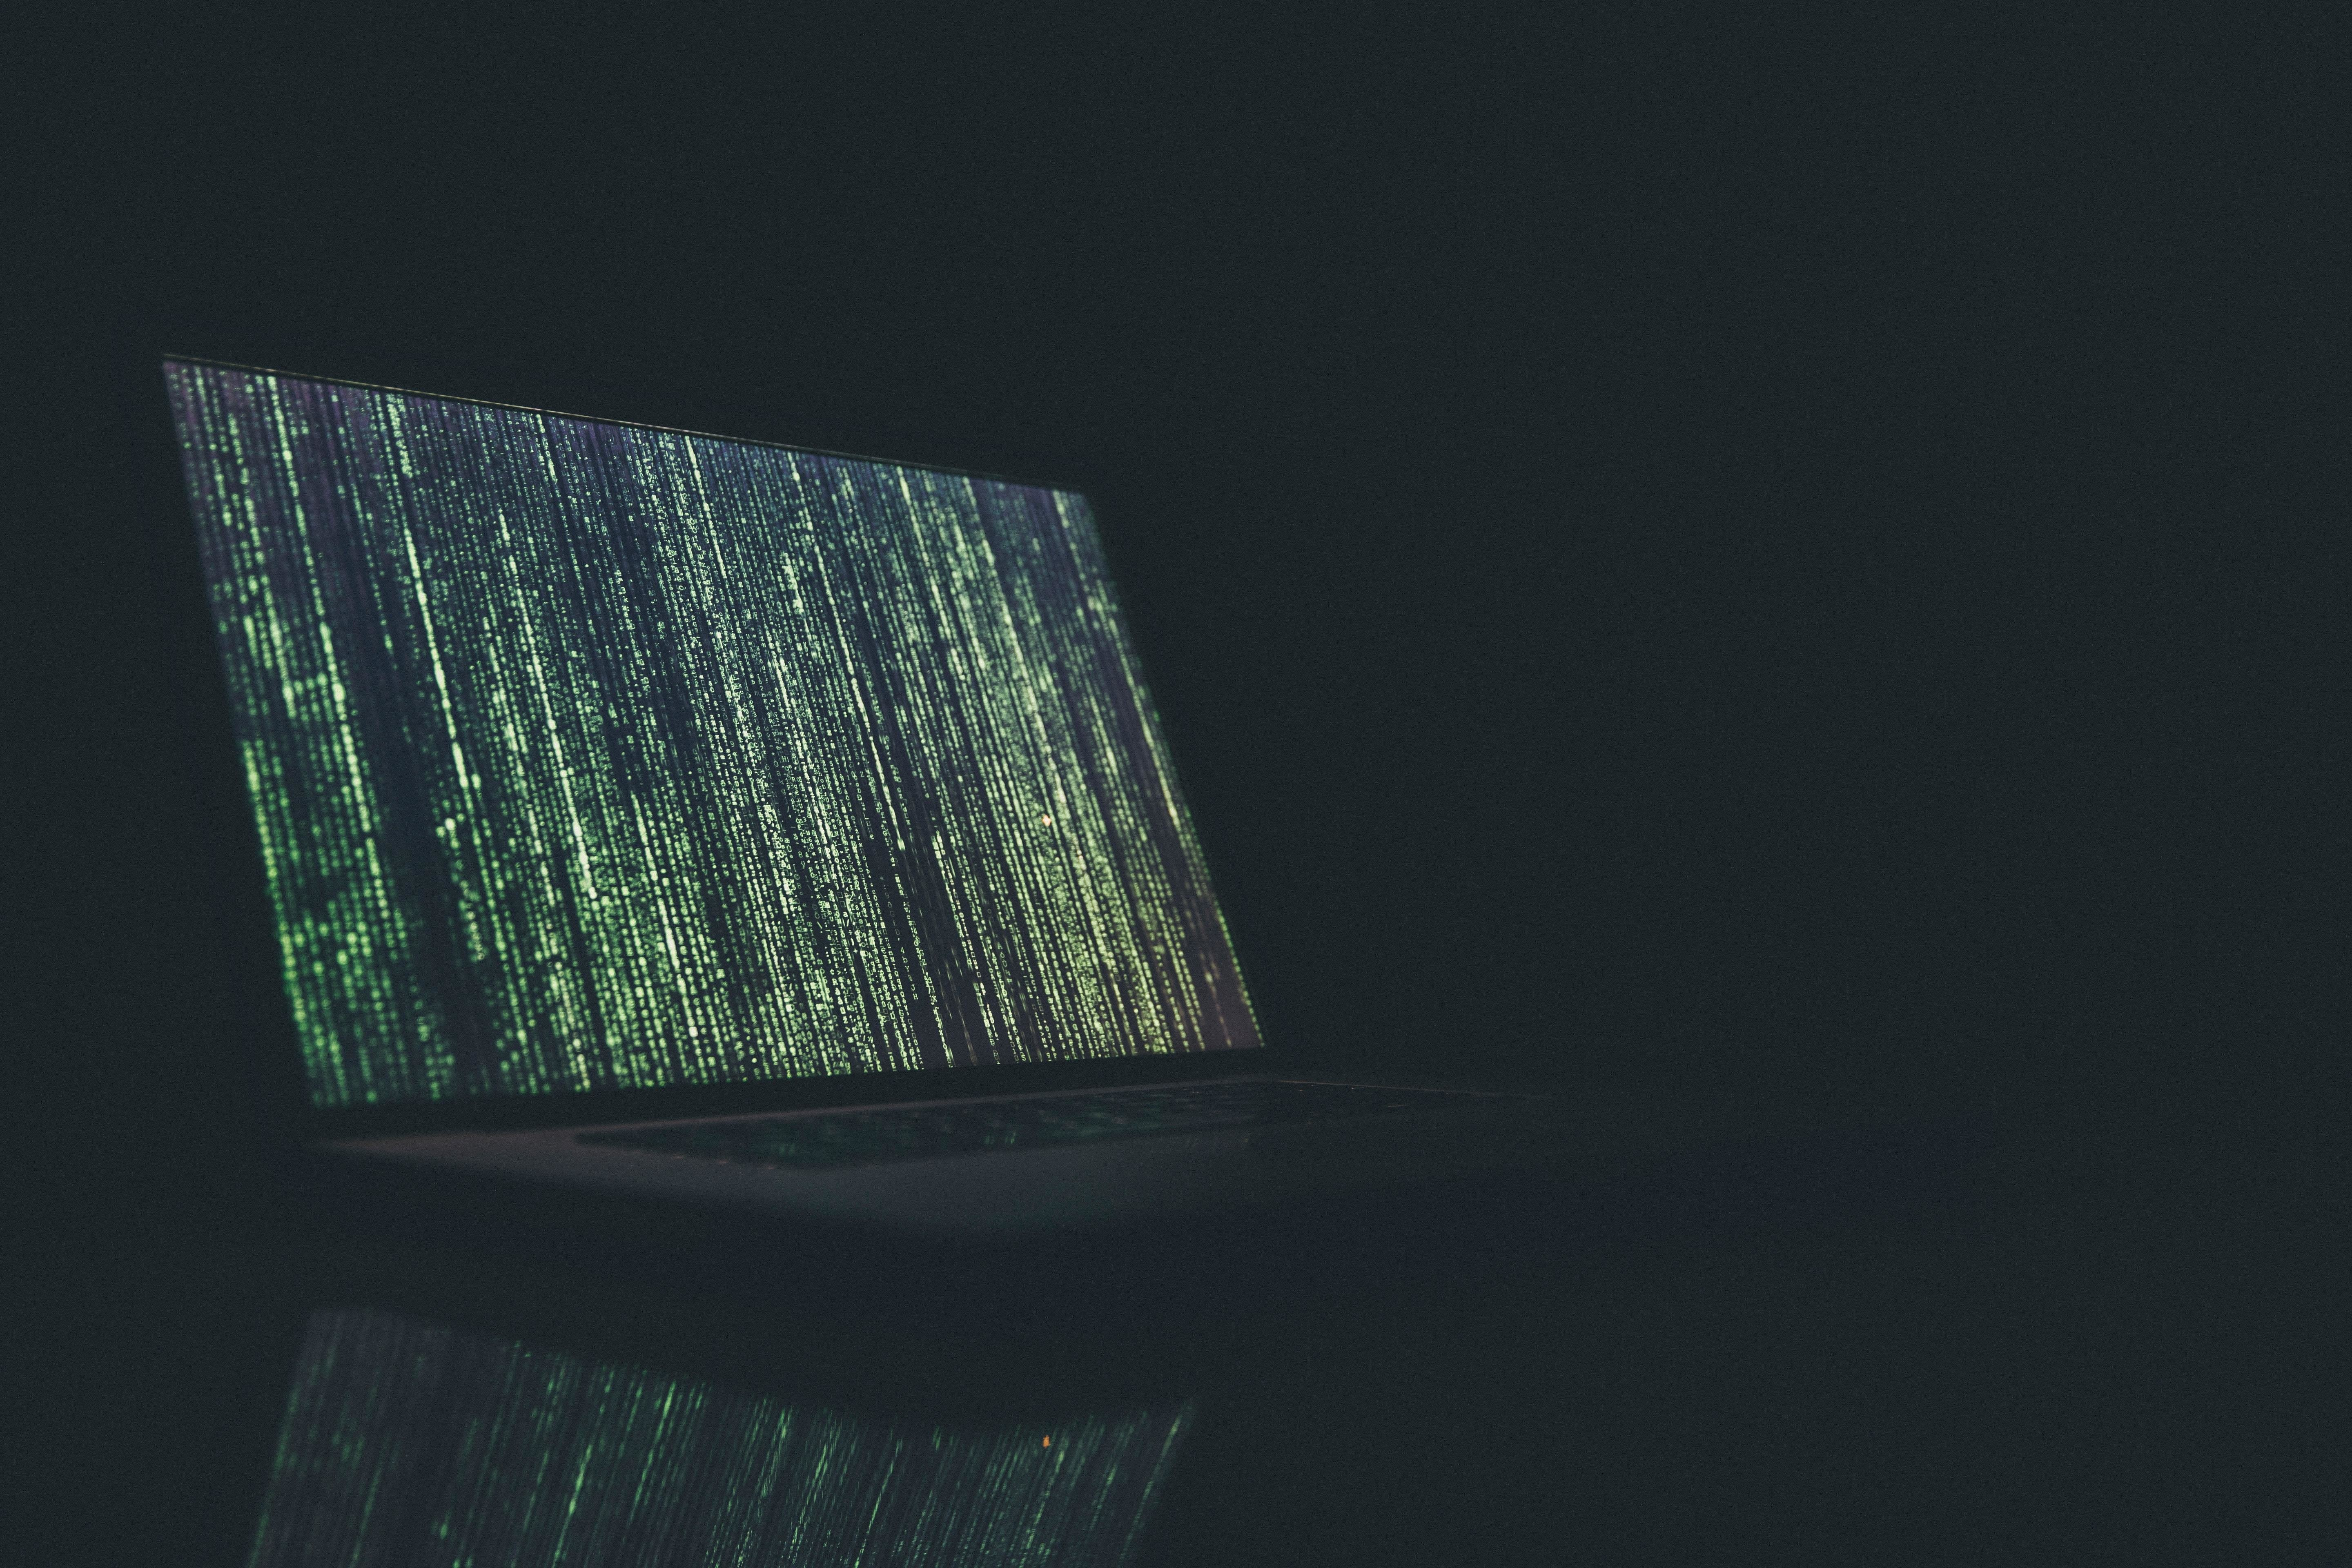 COVID-19 has disrupted cybersecurity, too – here's how businesses can decrease their risk